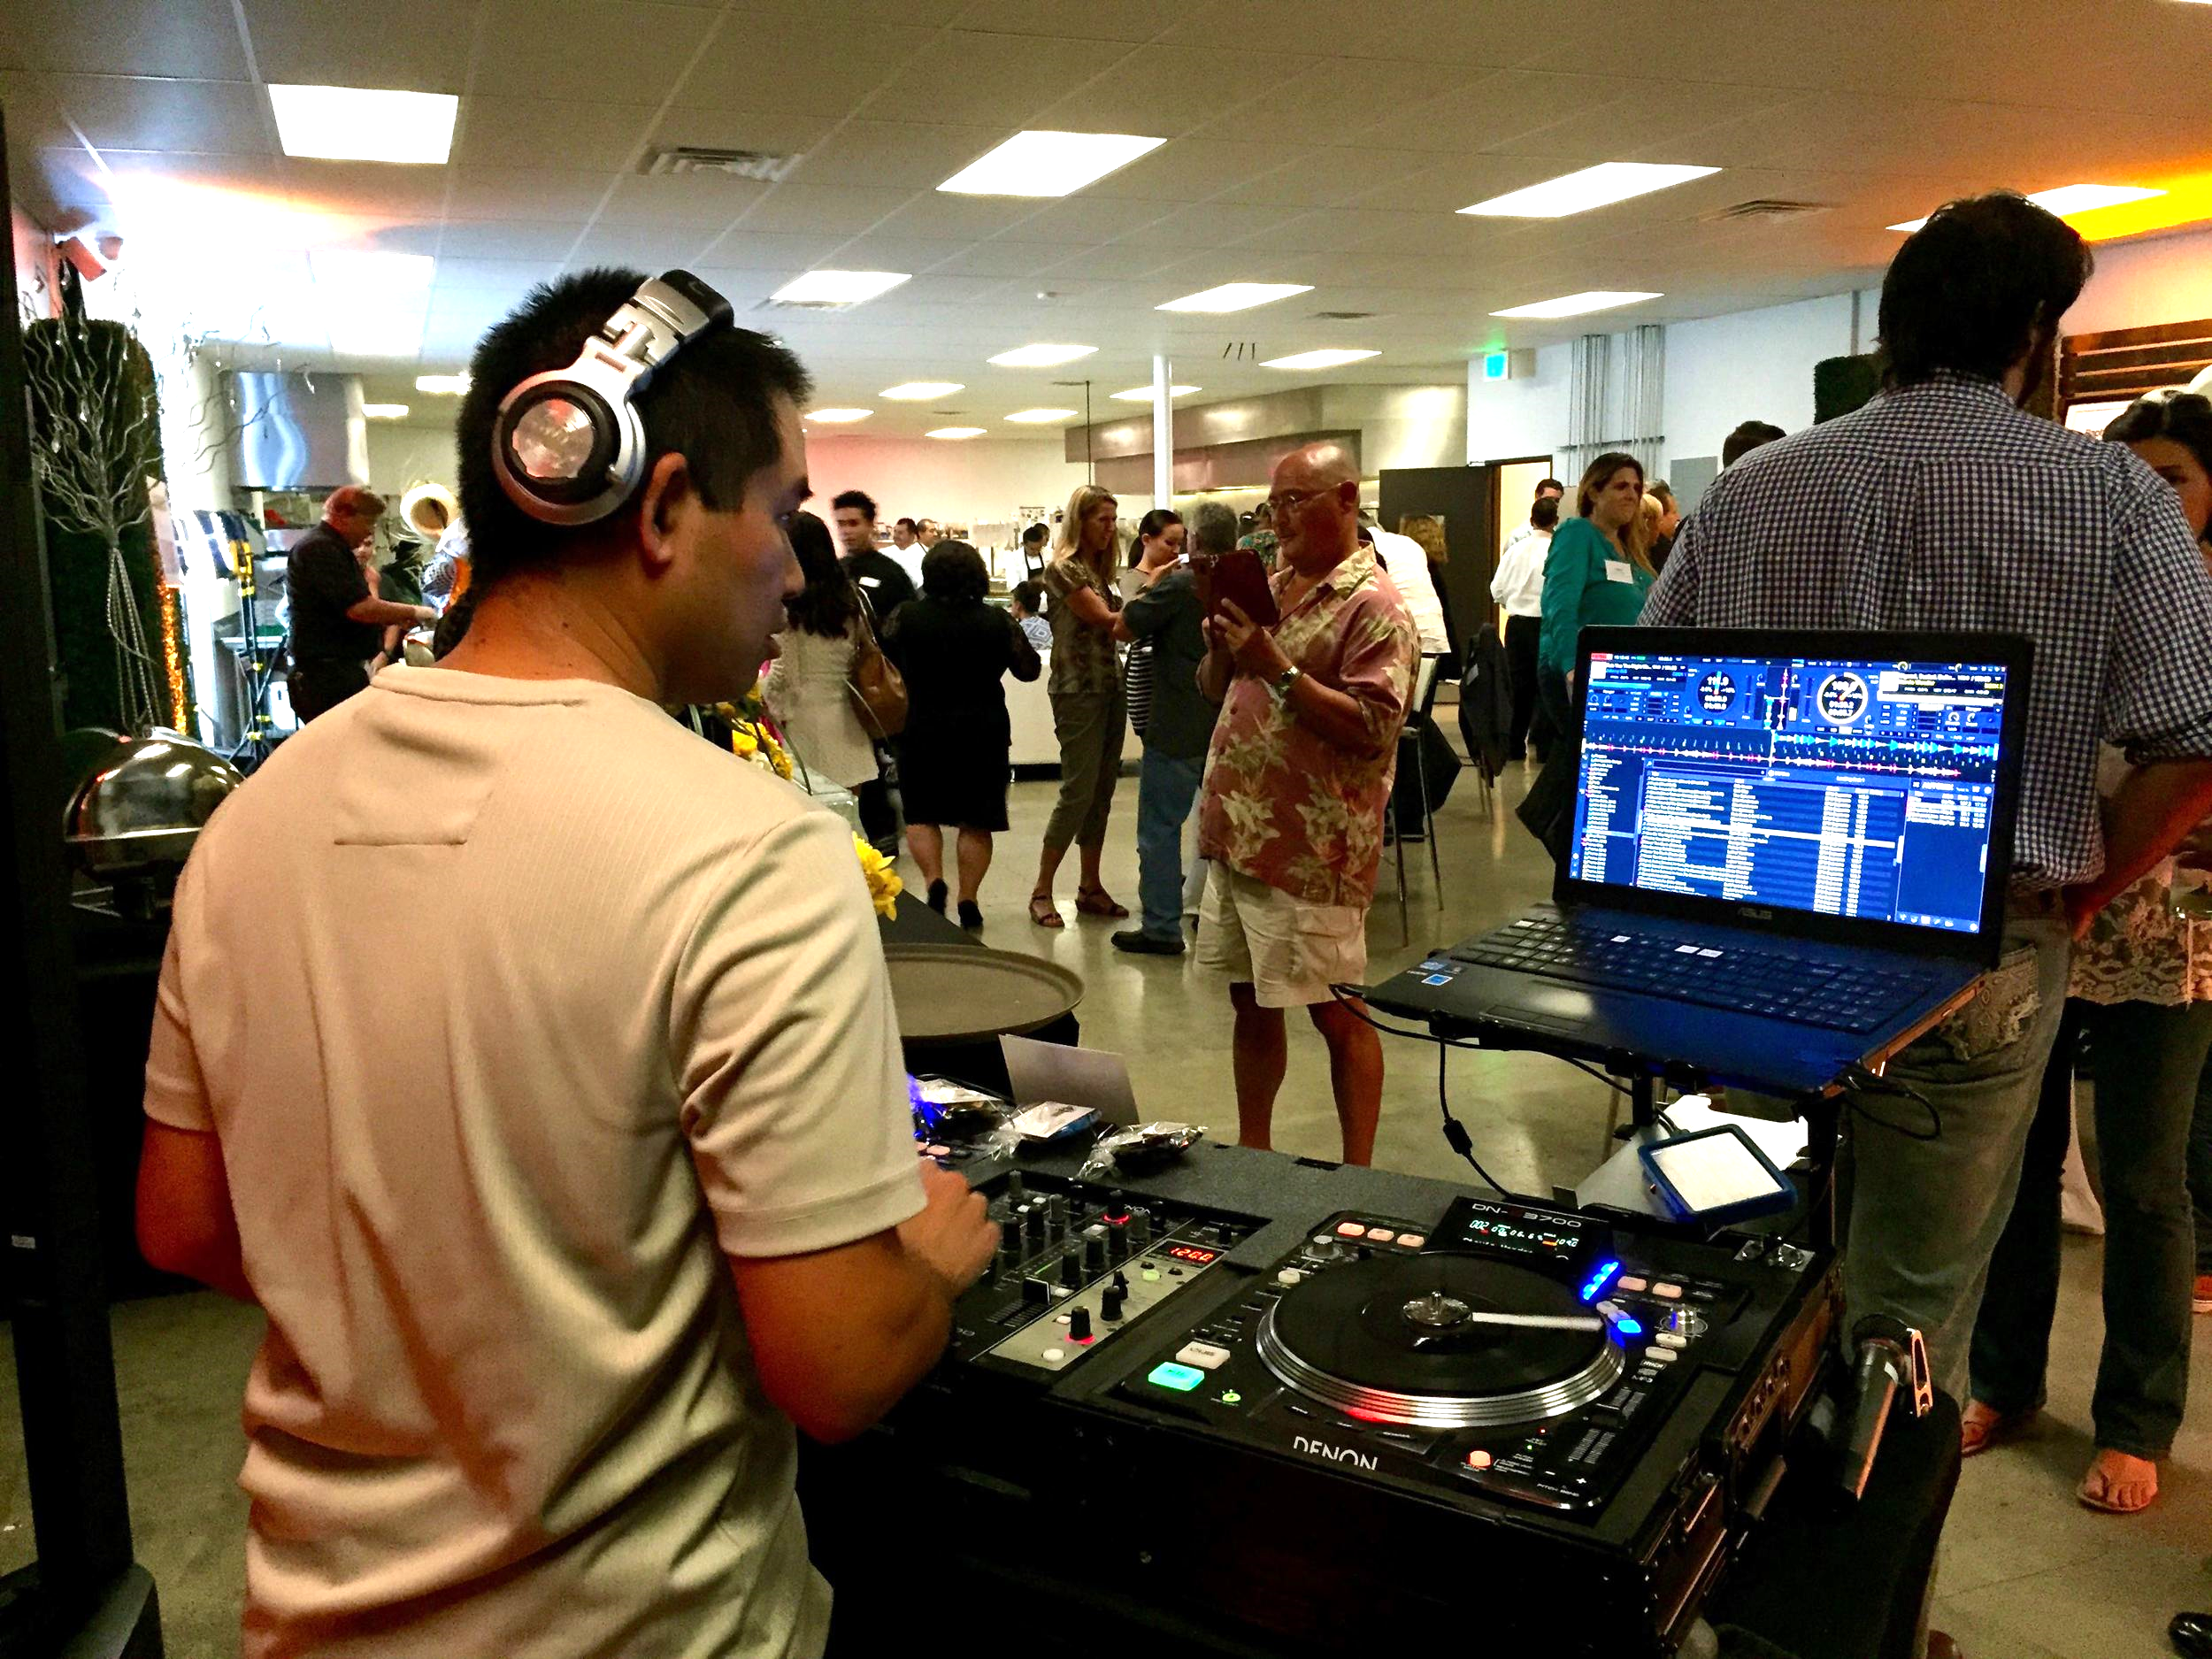 DJ Justin Kanoya provides live DJ service at the Brothers Signature Catering and Events grand opening party in San Diego, California.